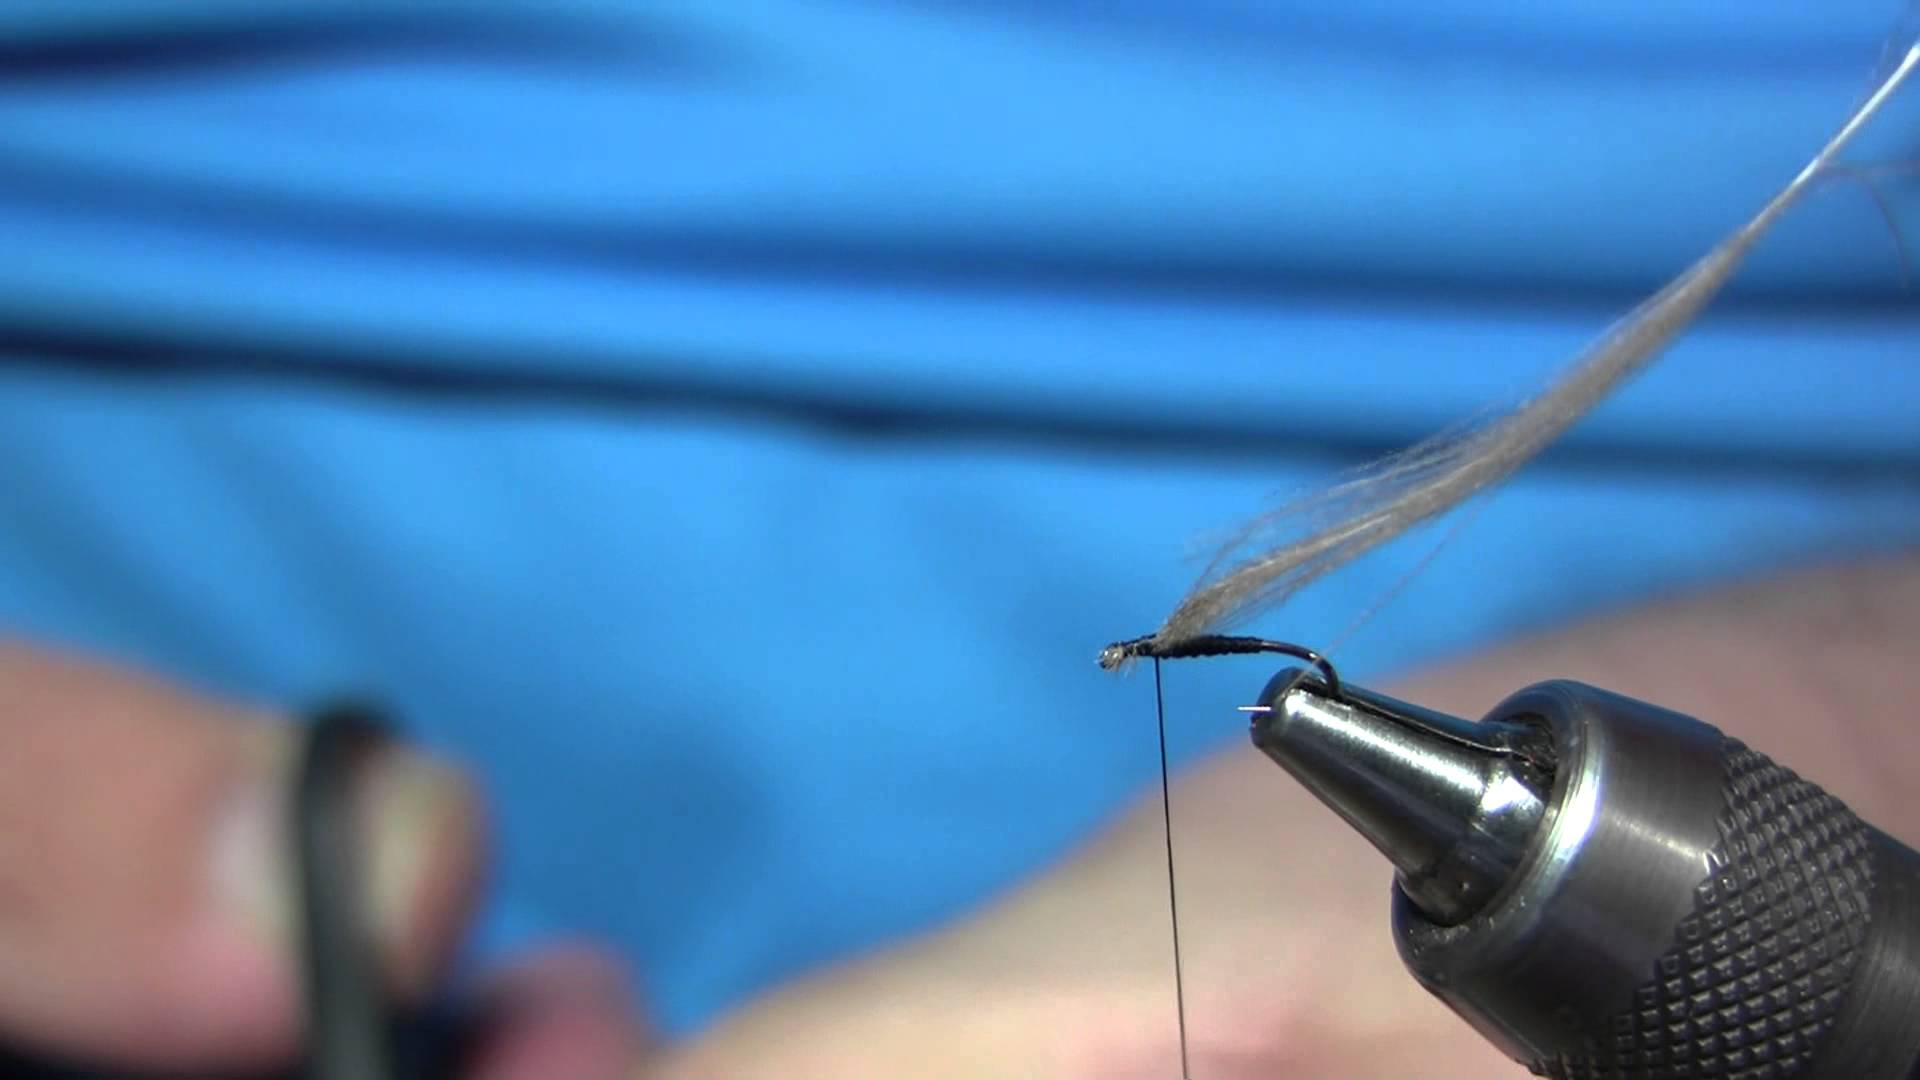 [Video] Swissflies: Black Dry Fly Midge